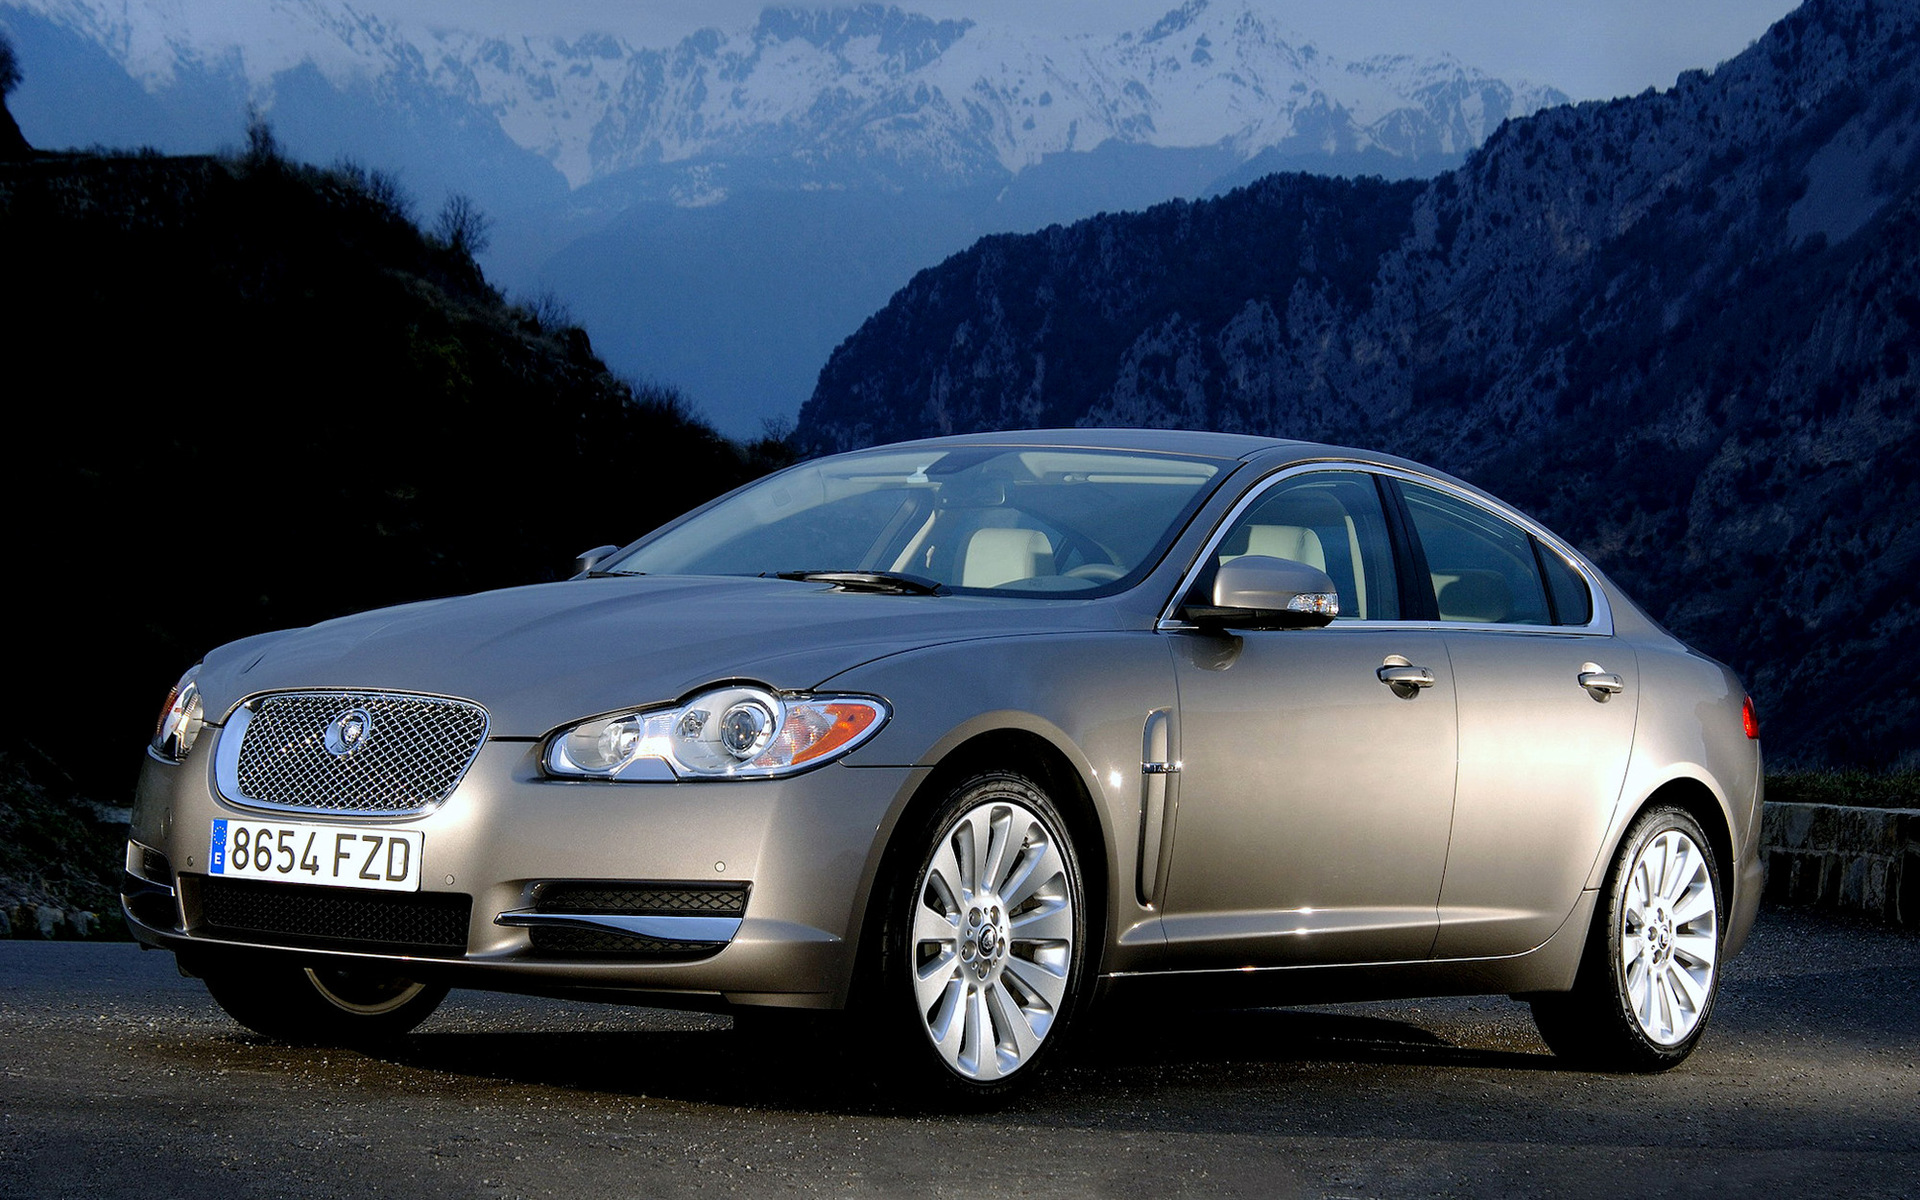 2008 Jaguar XF - Wallpapers And HD Images